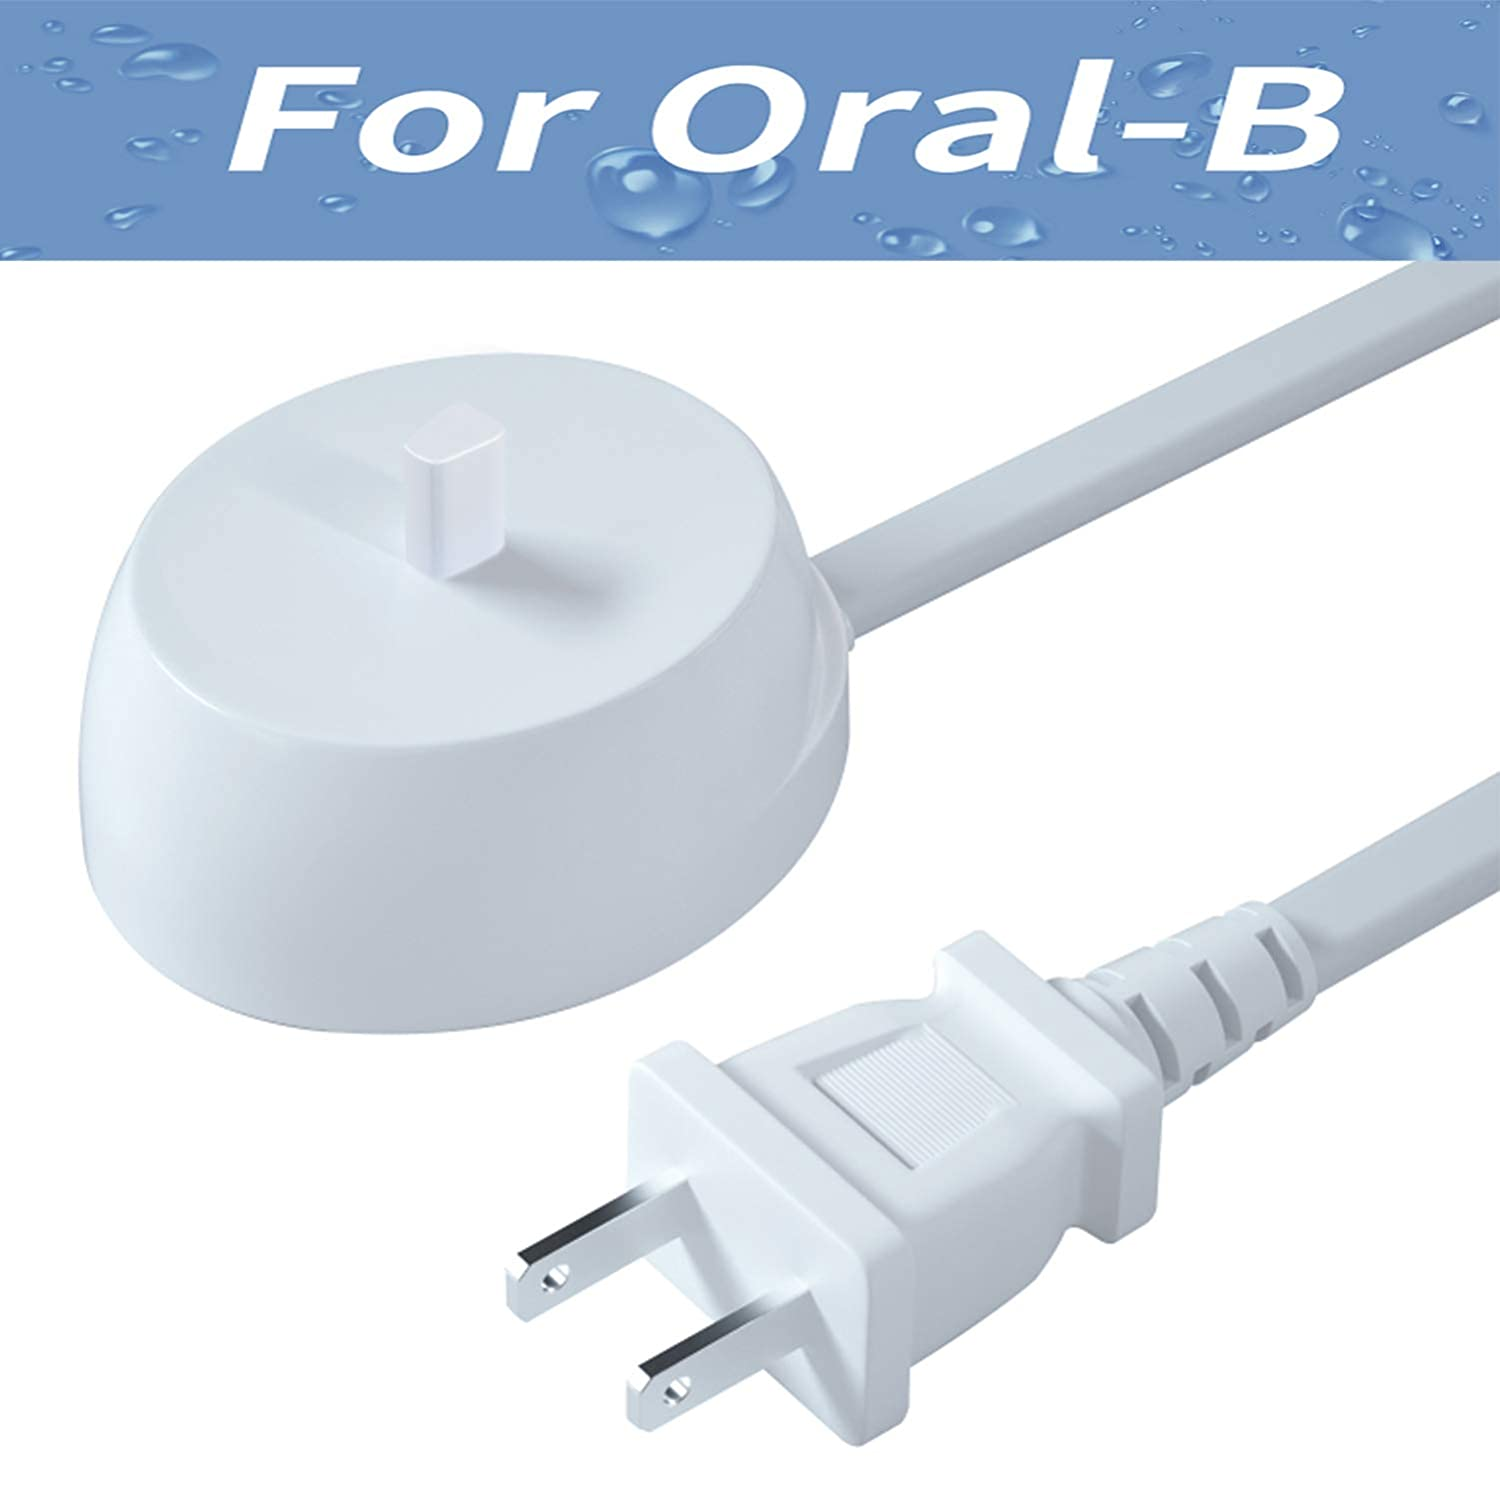 Replacement Charger Base for Braun Oral B -Electric Toothbrush Replacement Charger Power Cord Supply Portable Inductive Travel Charging Base Model 3757